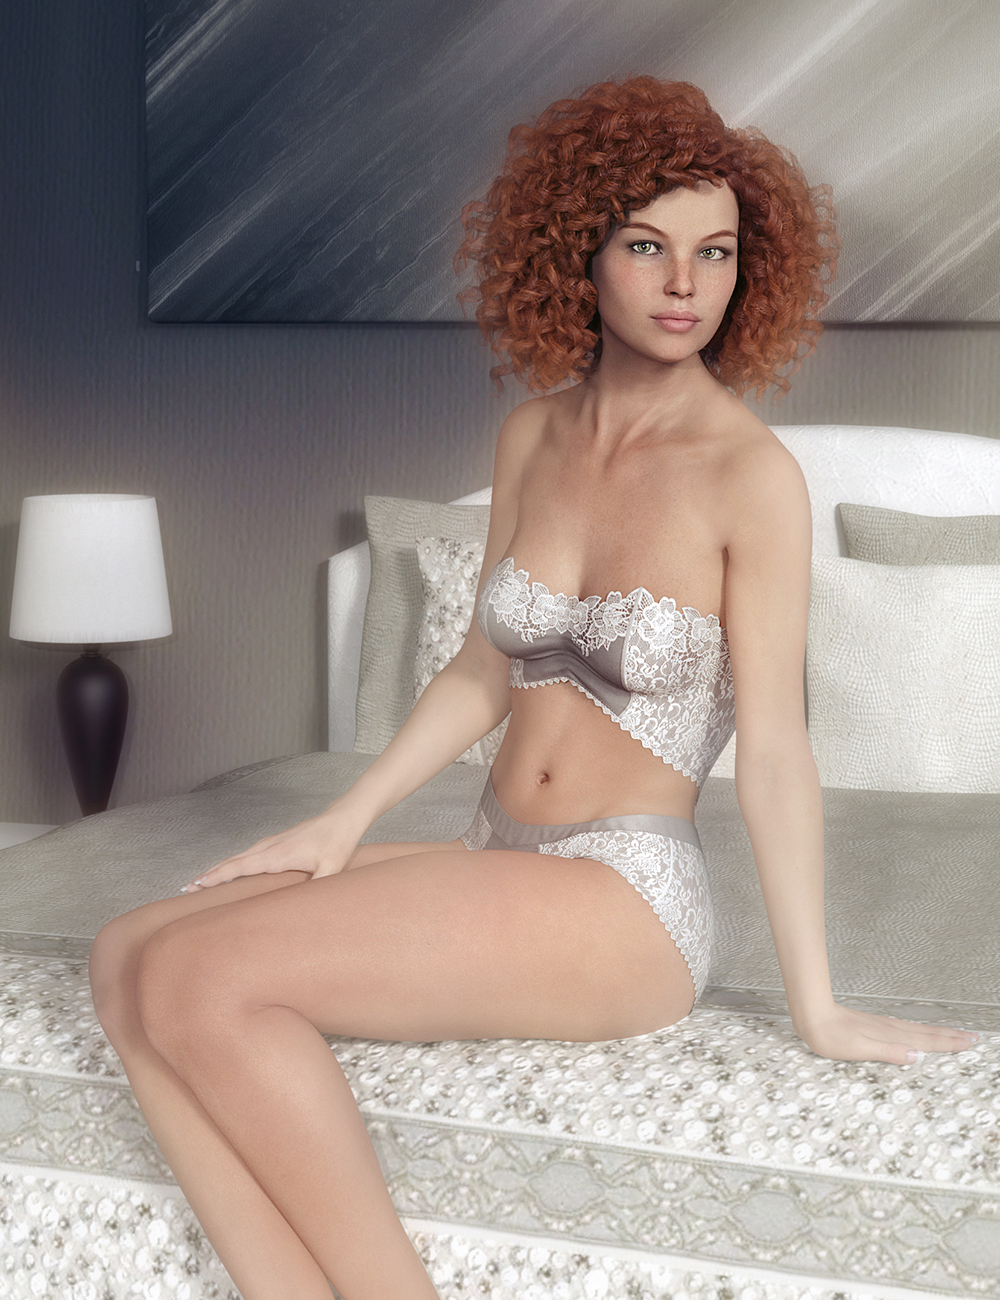 FWSA Erynn HD for Victoria 8 and LF Erynn Lingerie by: Fred Winkler ArtSabbyLilflame, 3D Models by Daz 3D